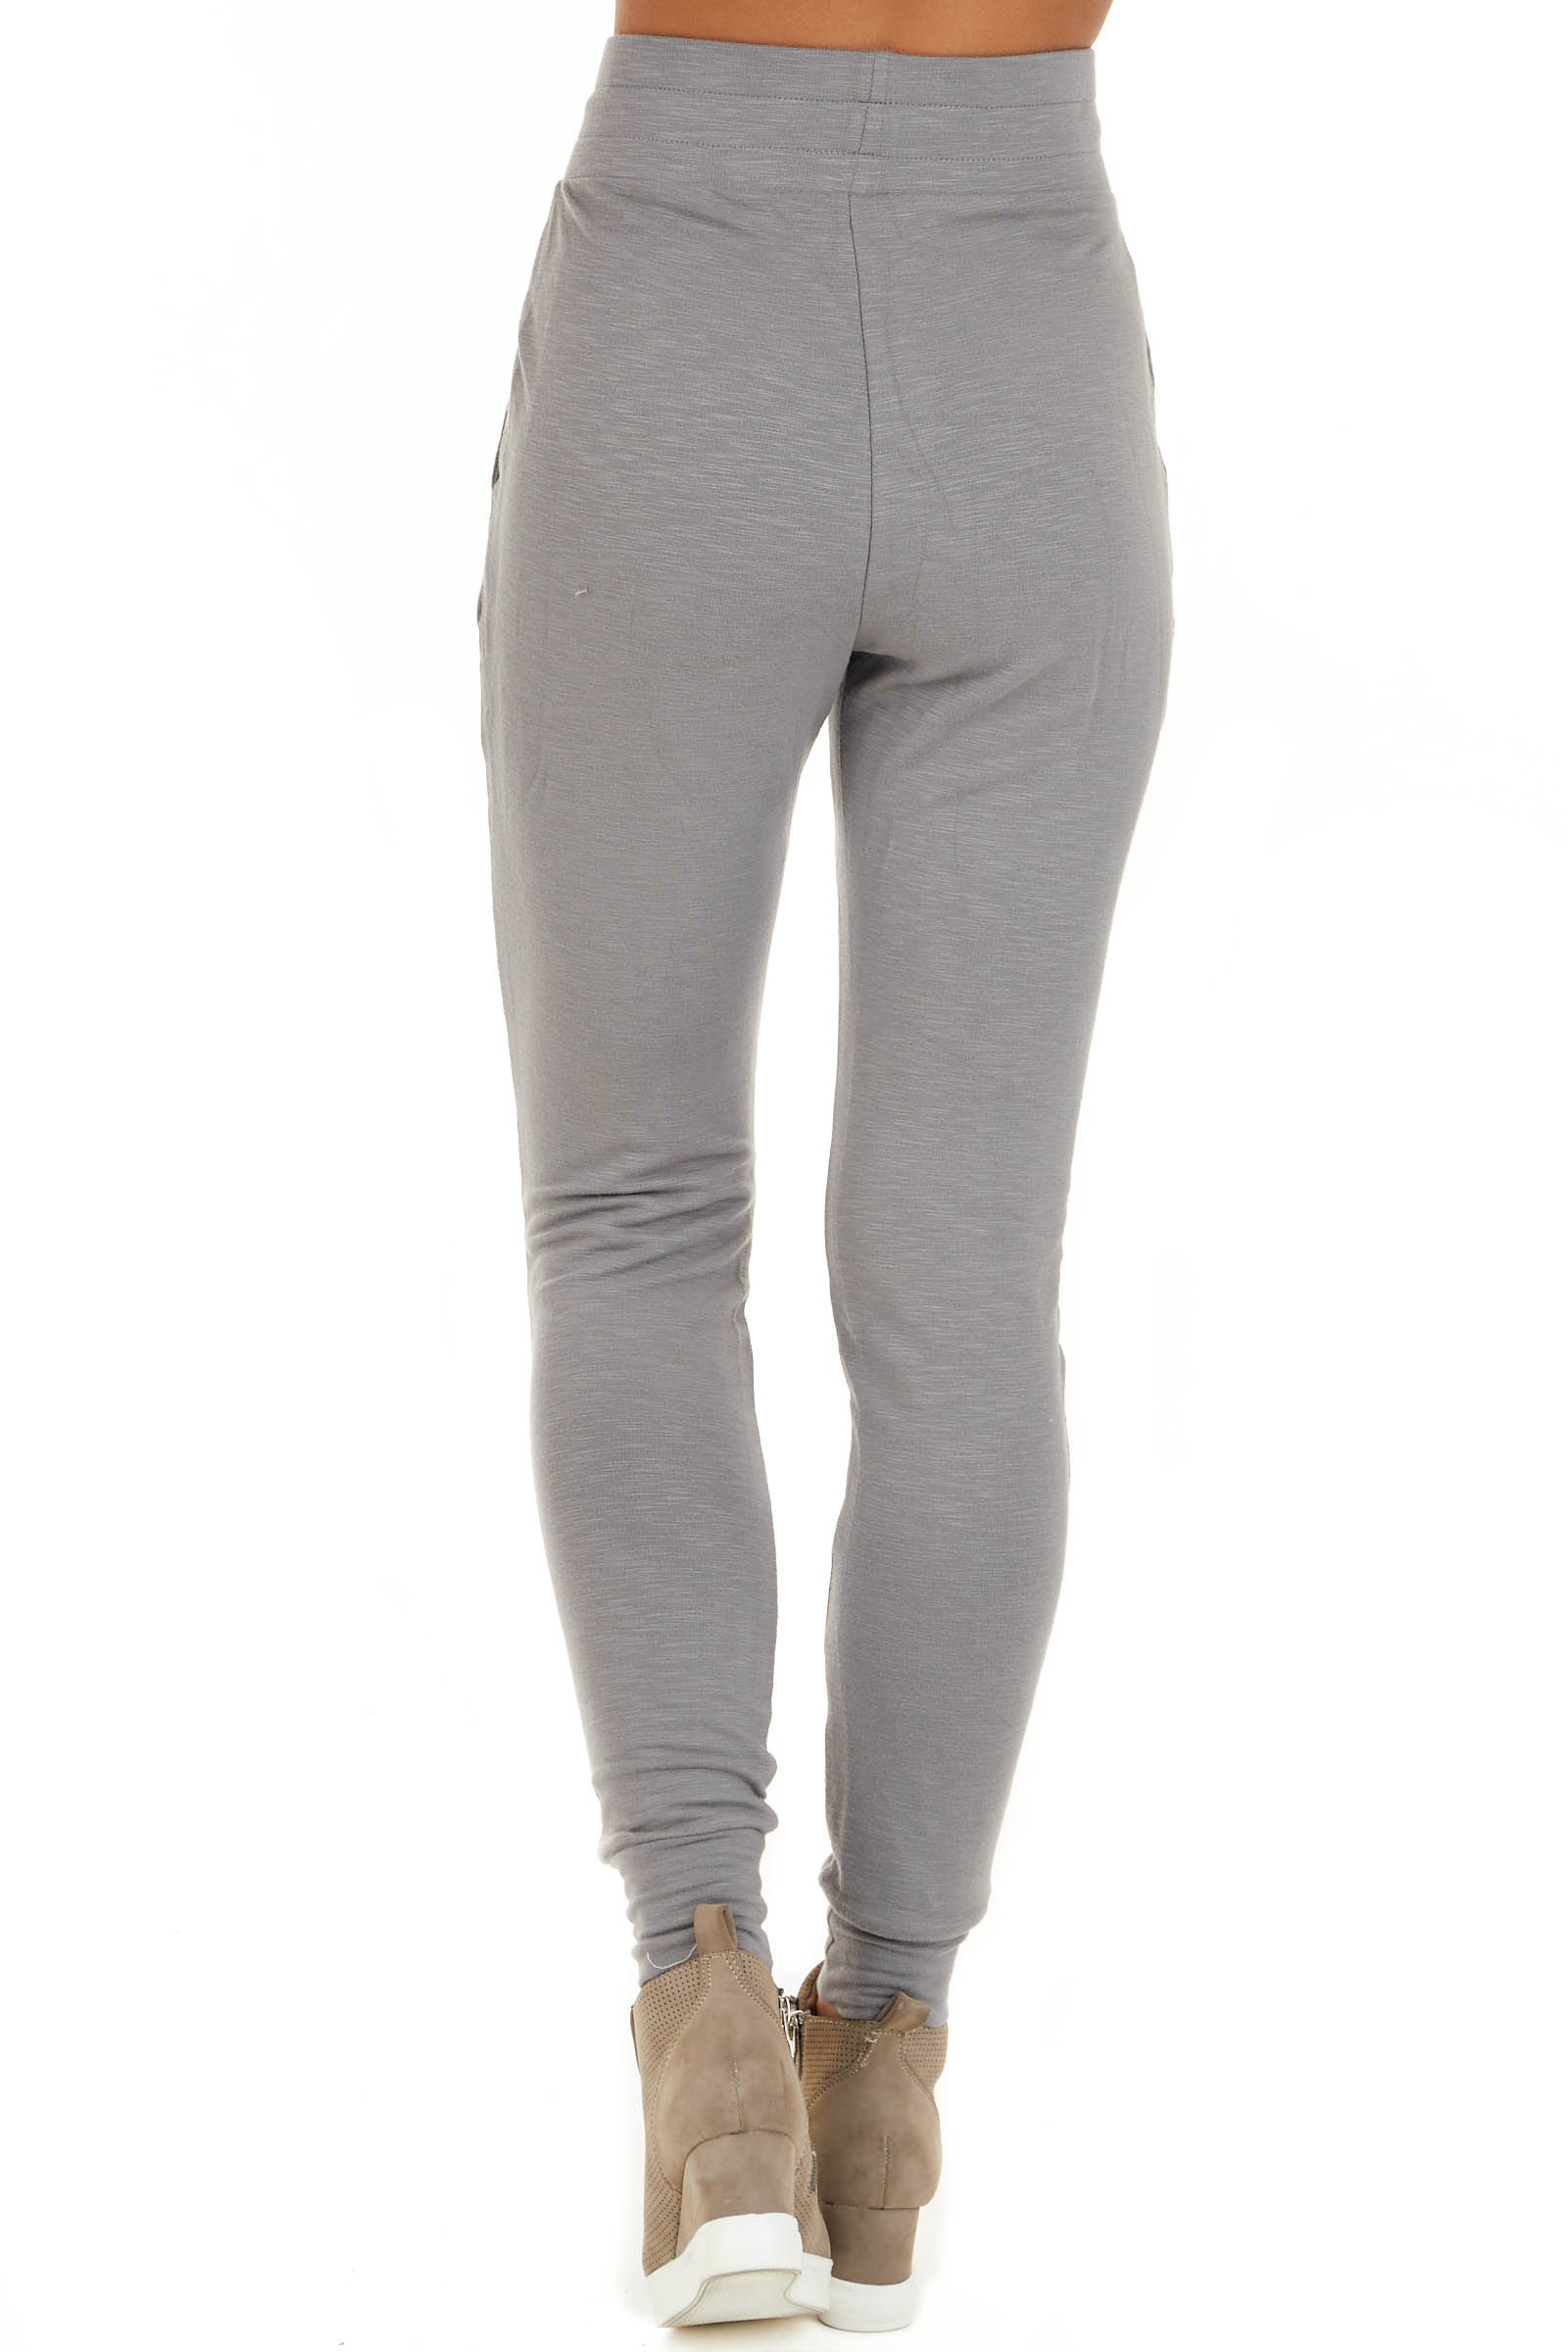 Heather Grey Joggers with Front Pockets and Drawstring Waist back view